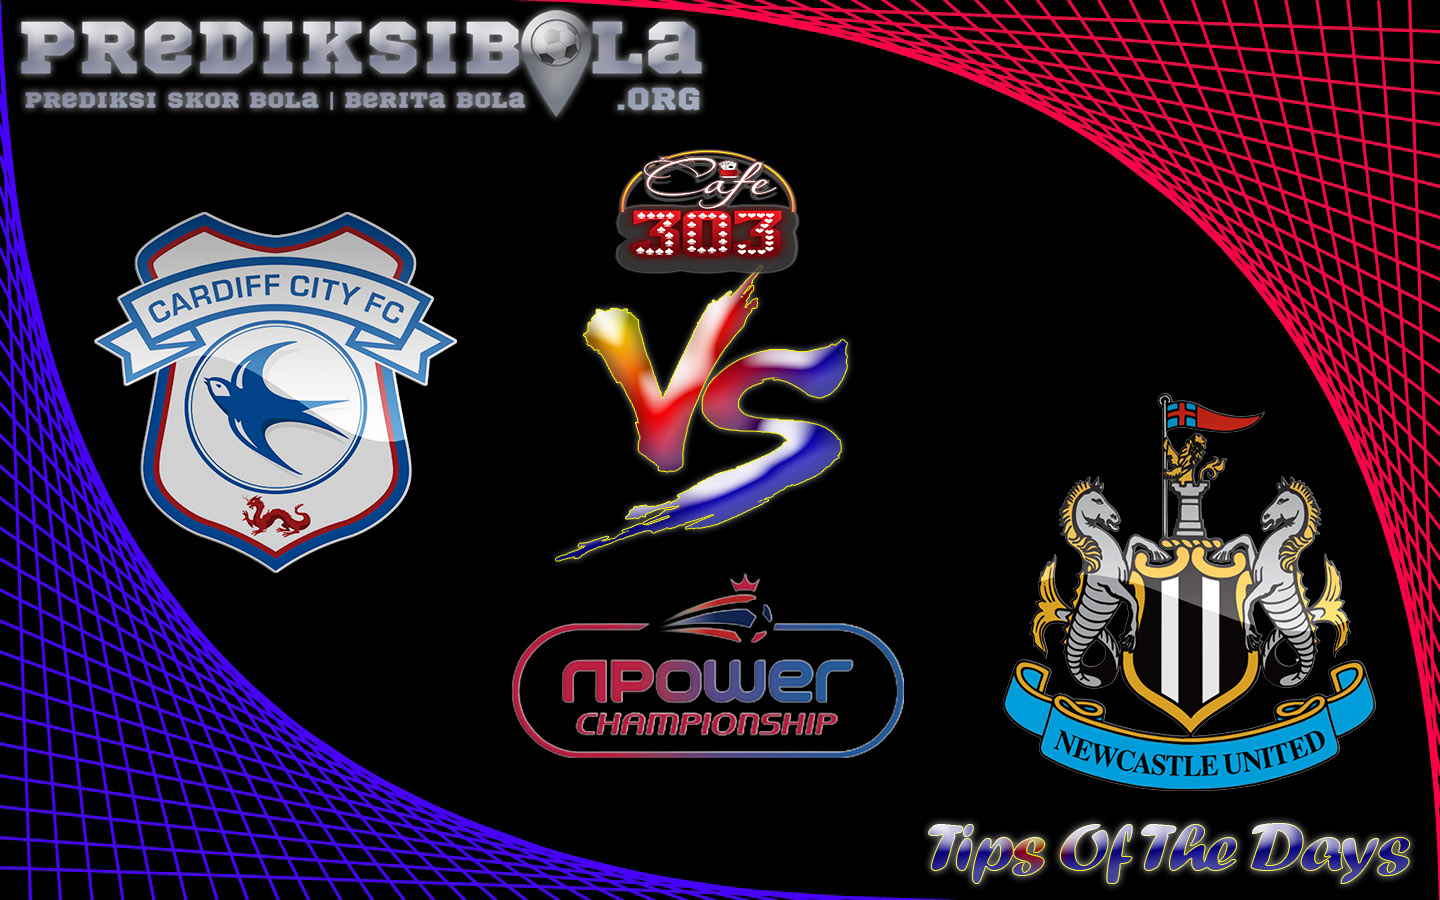 Prediksi Skor Cardiff City Vs Newcastle United 29 April  2017